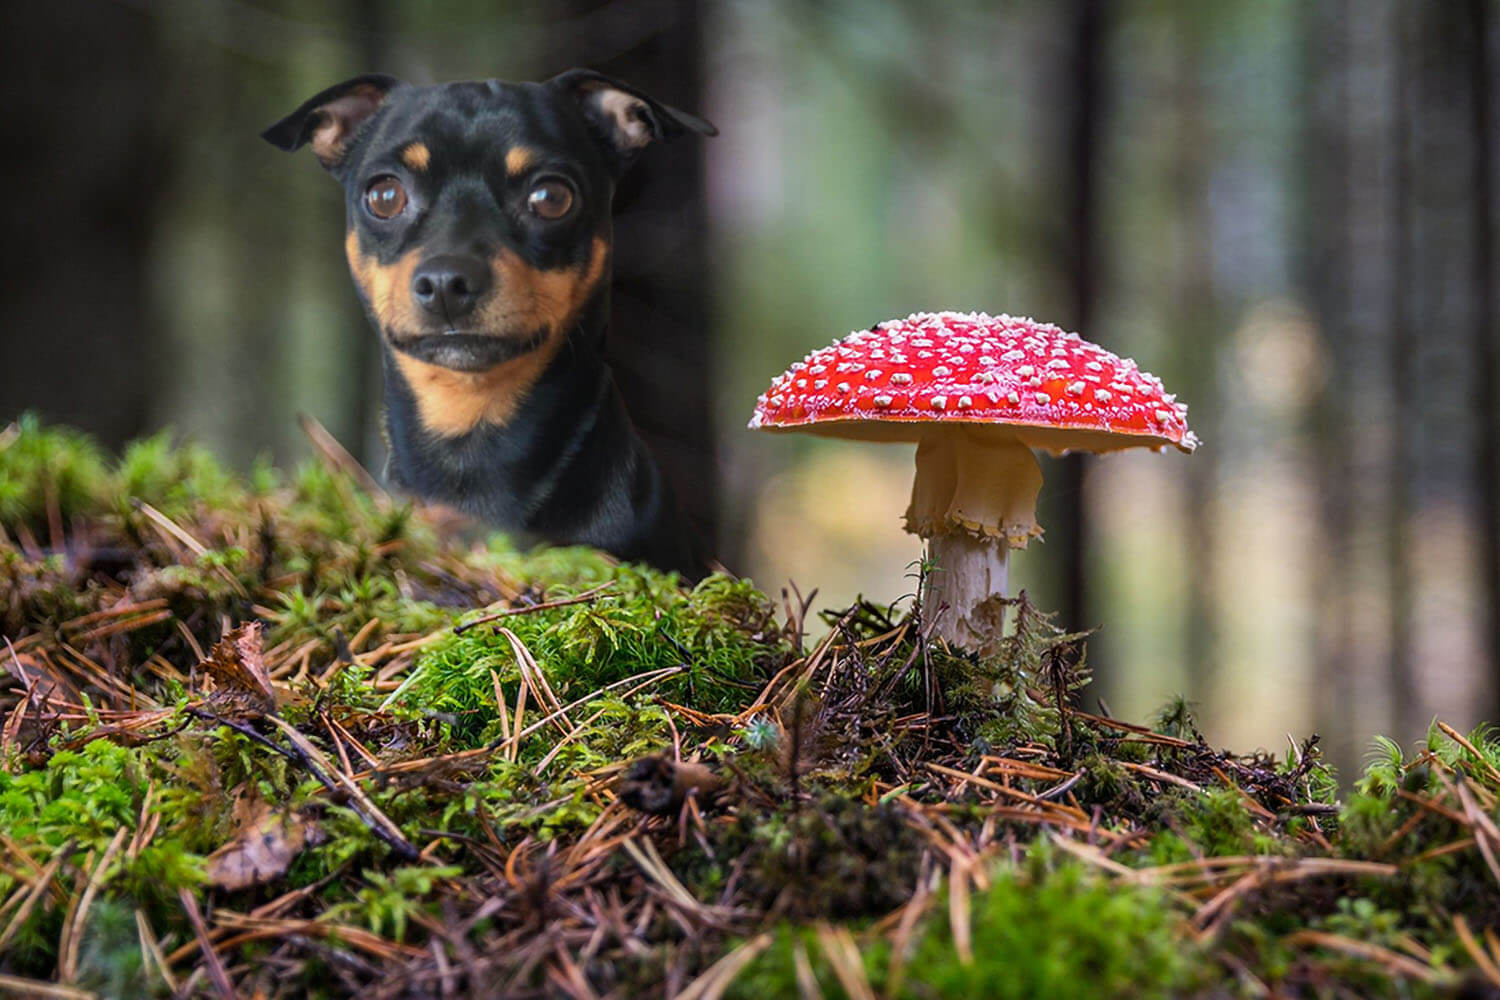 Can Dogs Eat Mushrooms? It's Trickier